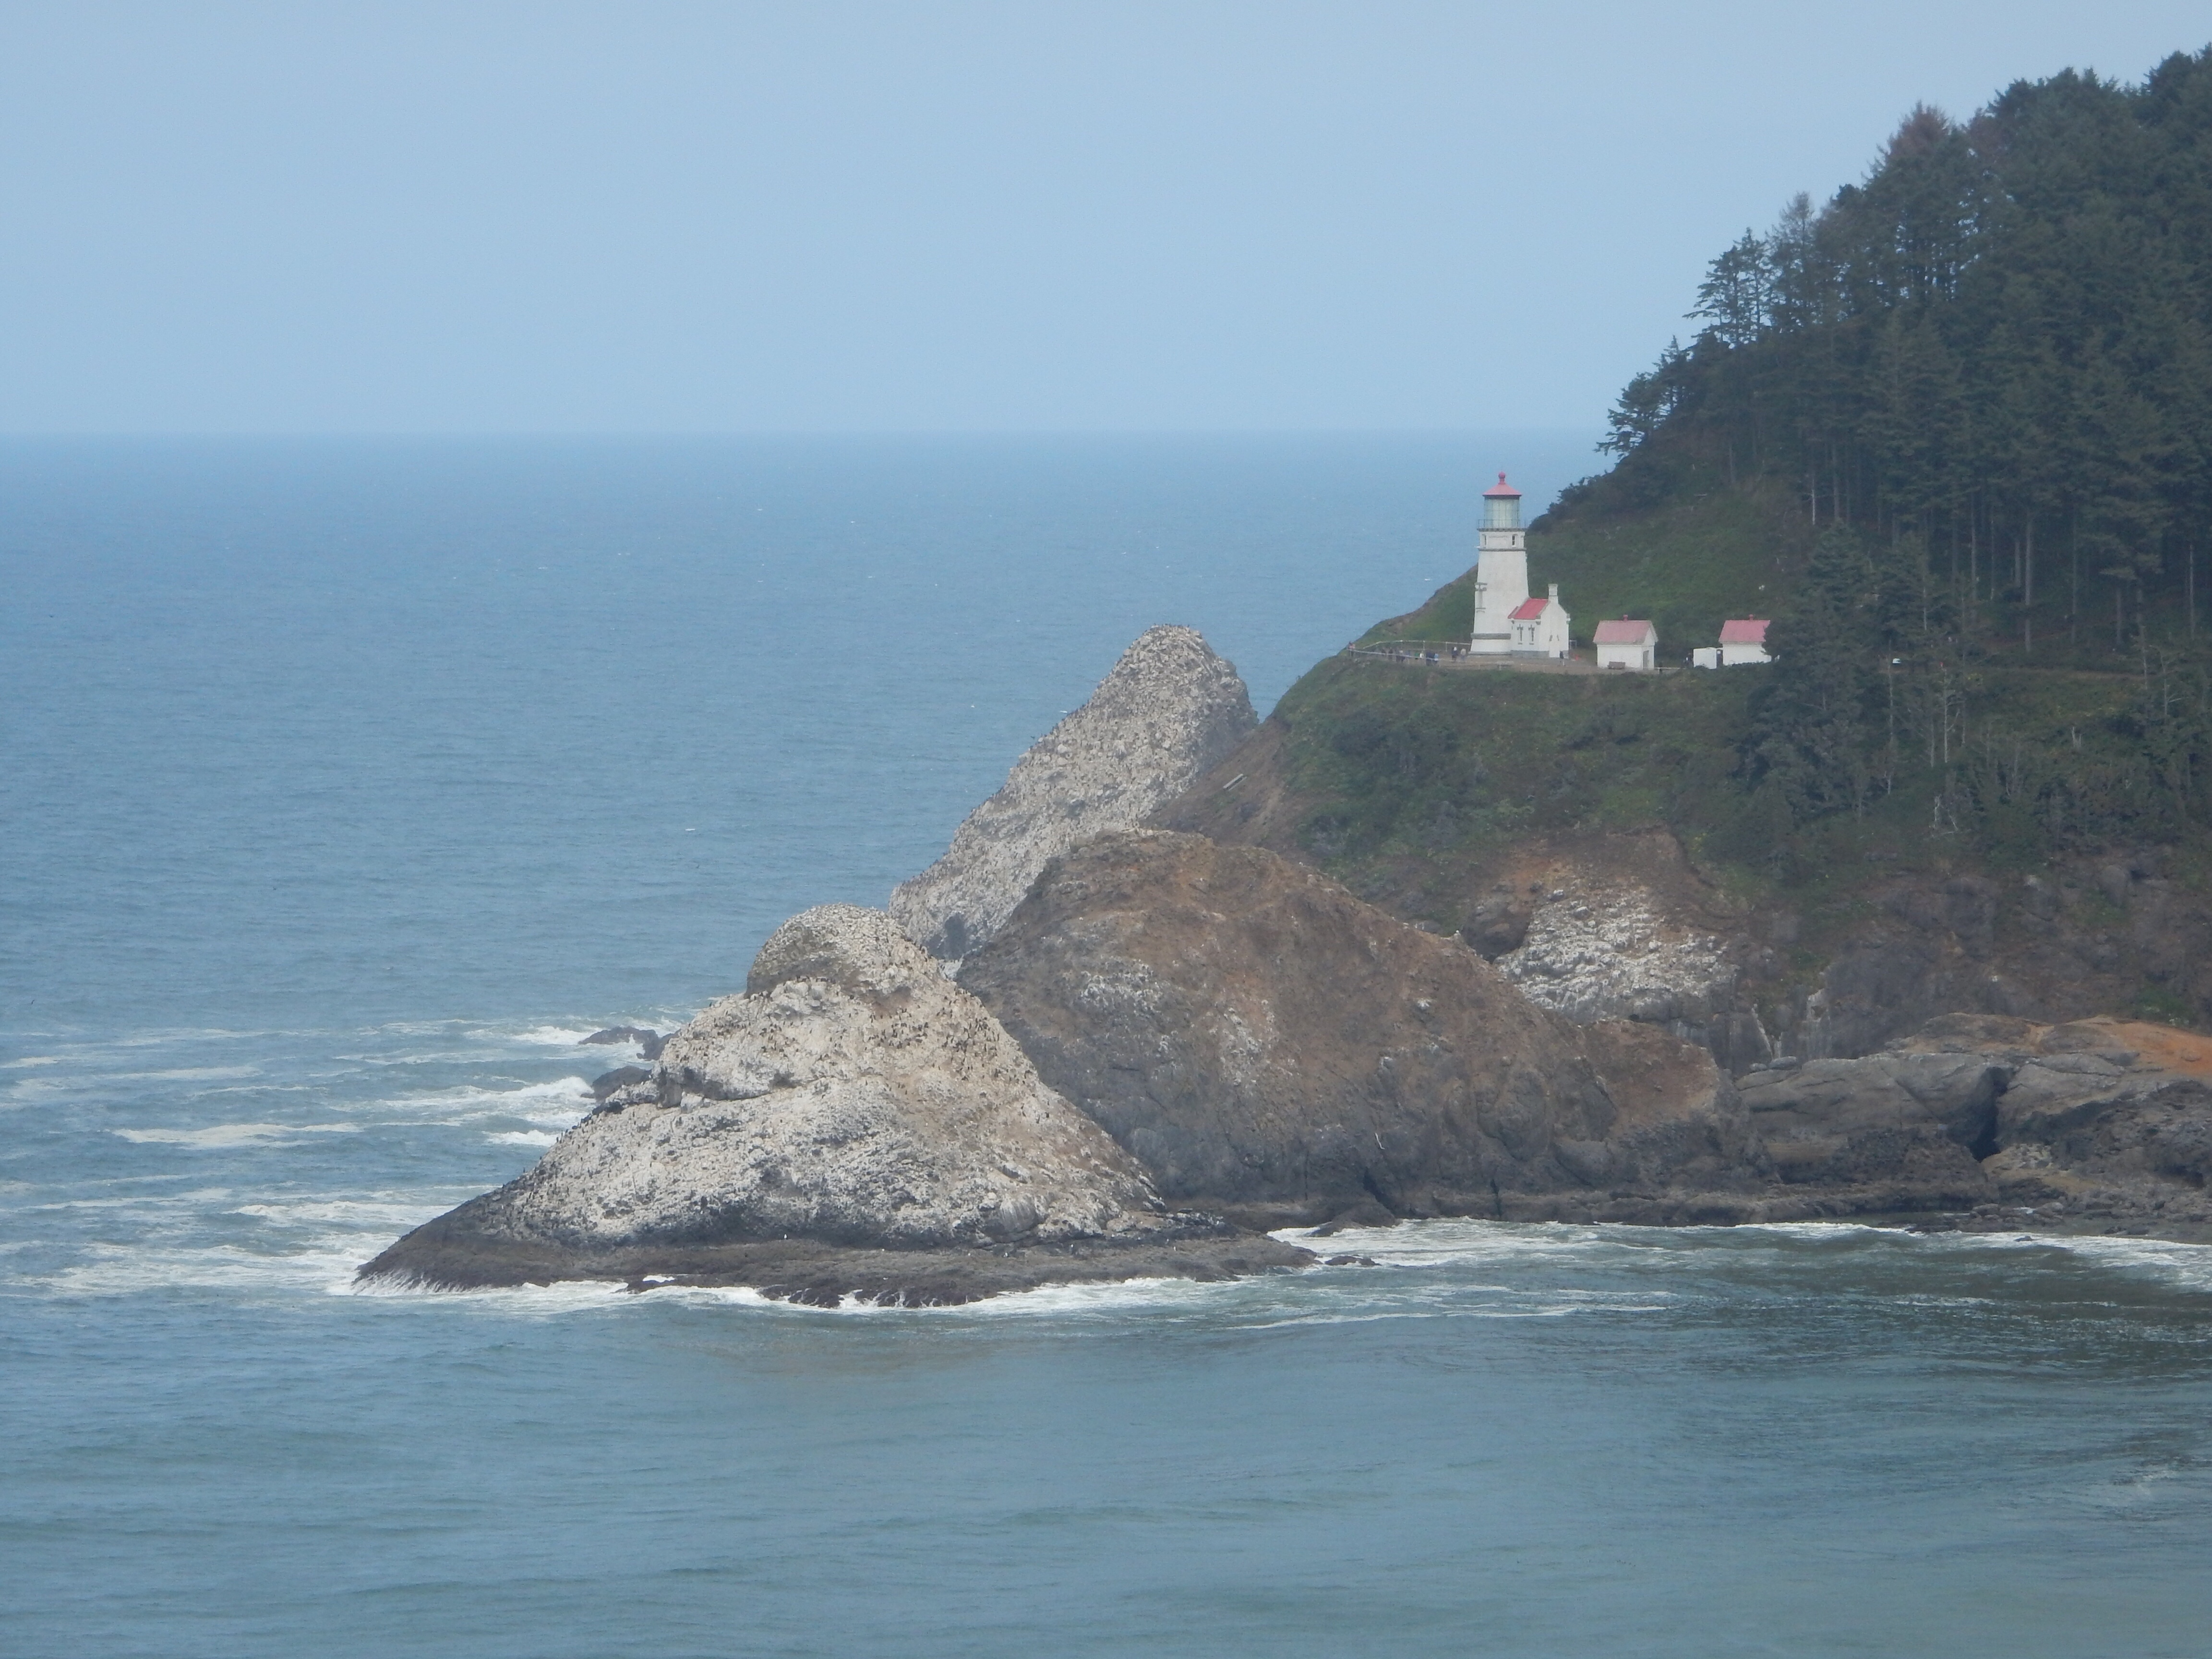 A distant look at the Heceta Head lighthouse.